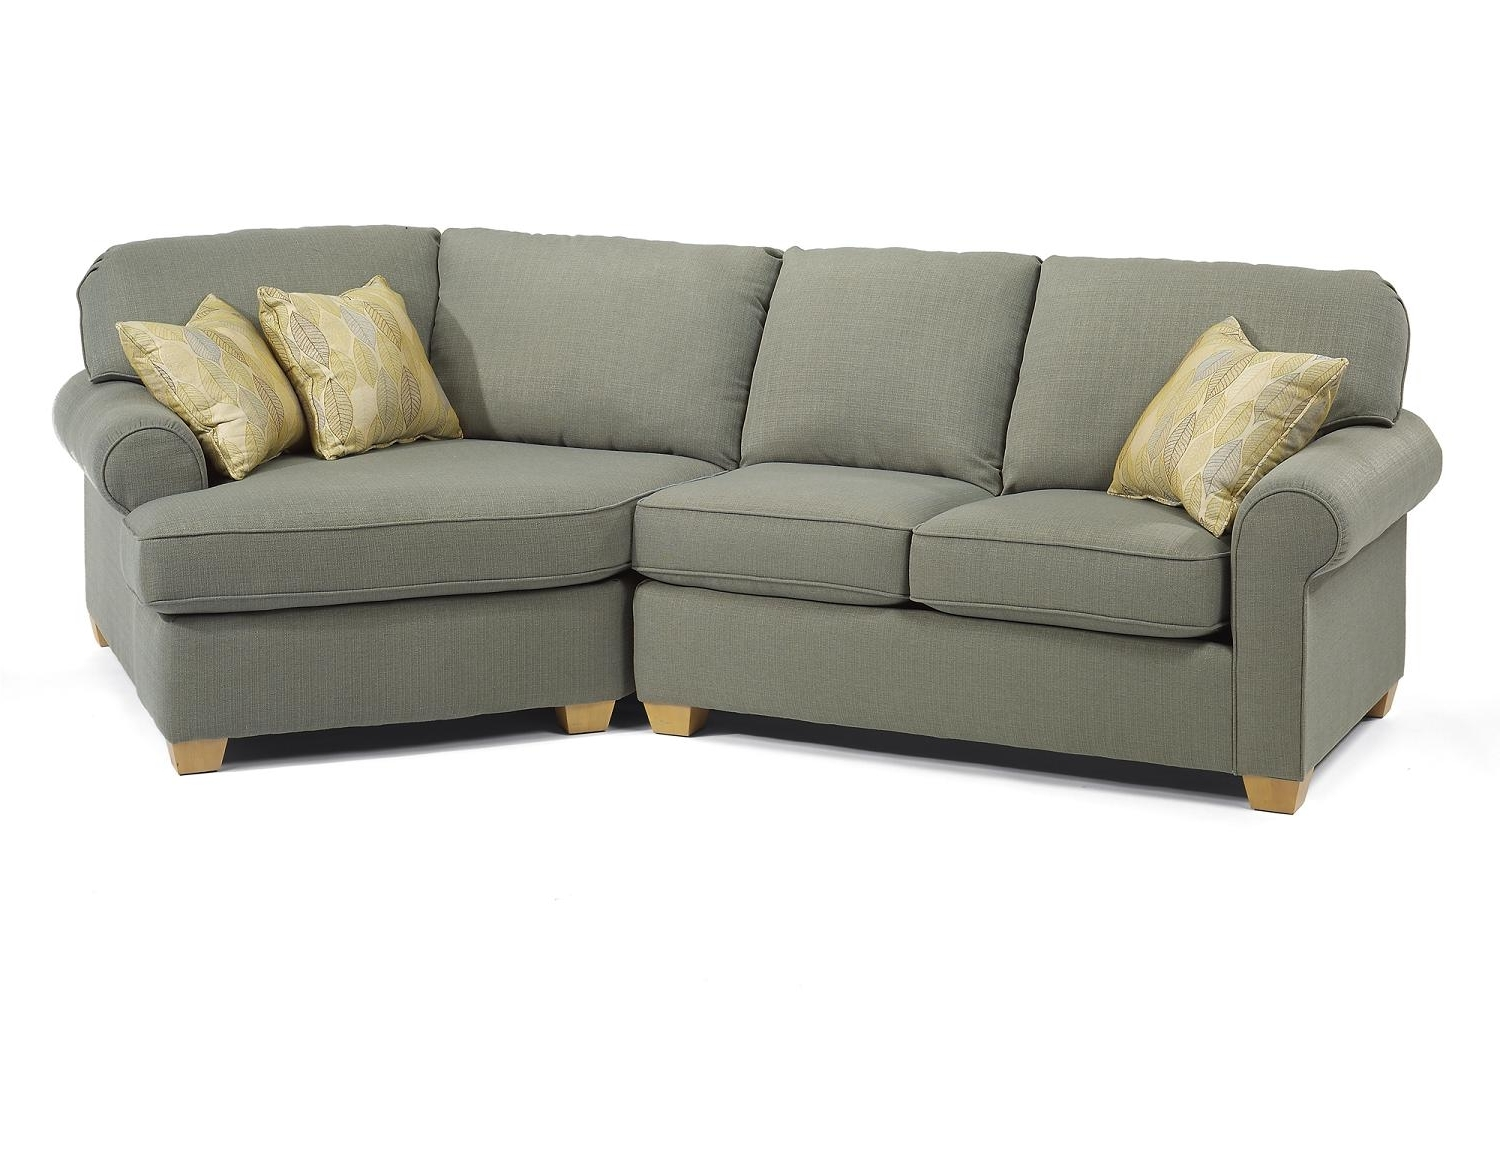 Stylish Small Sectional Sofa With Chaise — Fabrizio Design In Widely Used Small Sectional Sofas With Chaise (View 15 of 15)